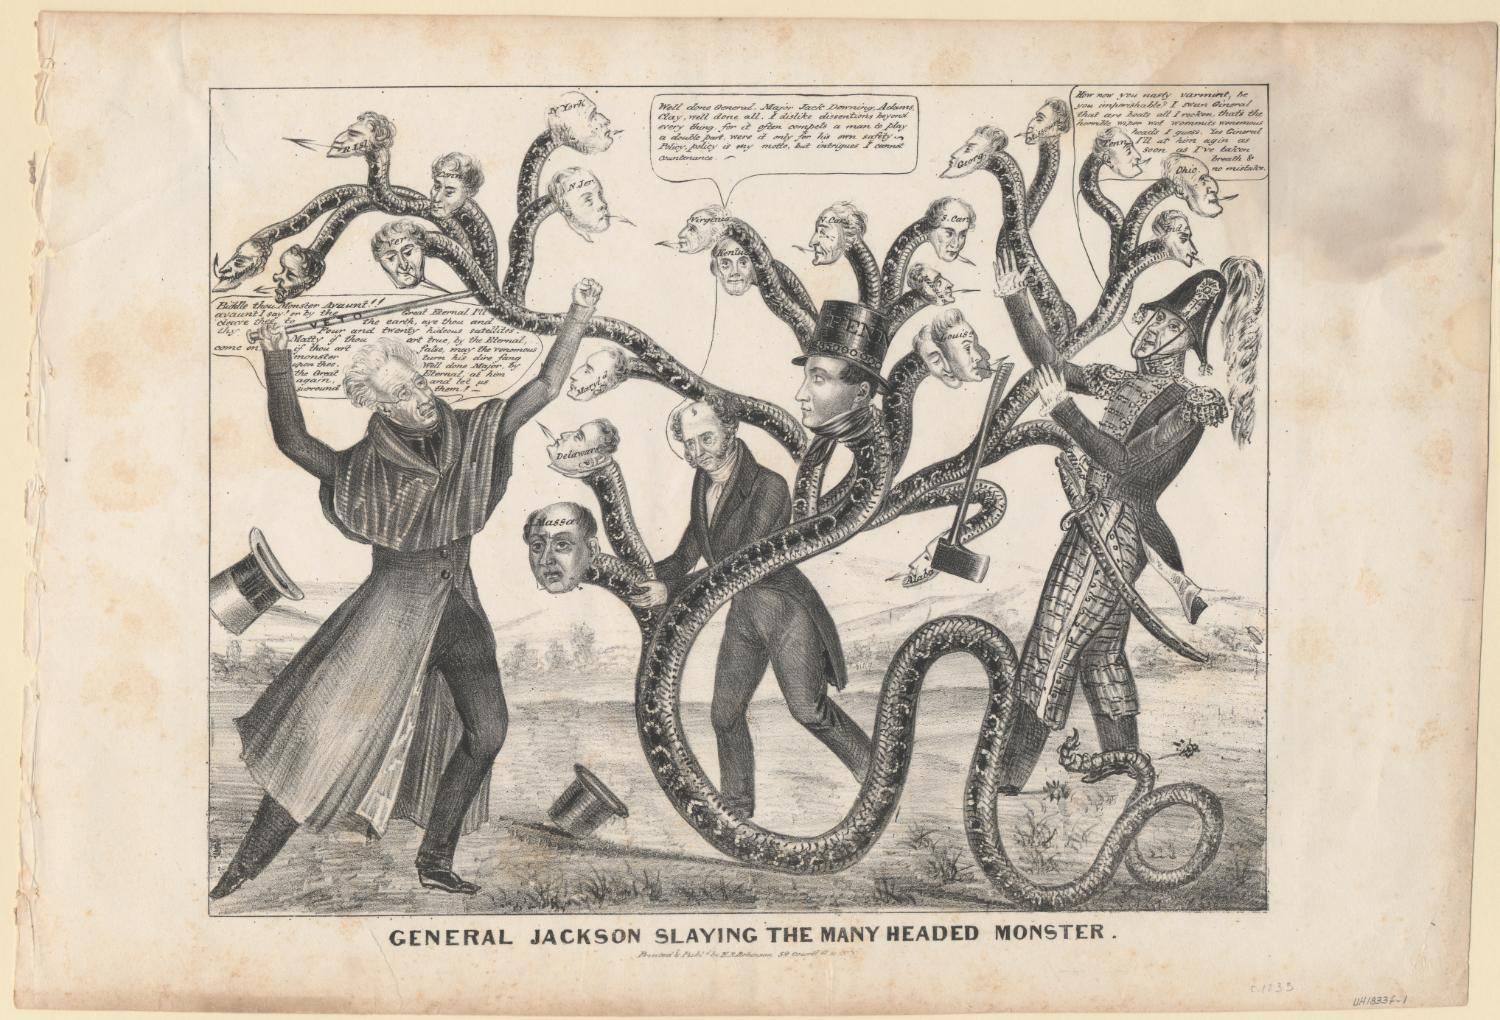 https://upload.wikimedia.org/wikipedia/commons/b/be/General_Jackson_Slaying_the_Many_Headed_Monster.jpg